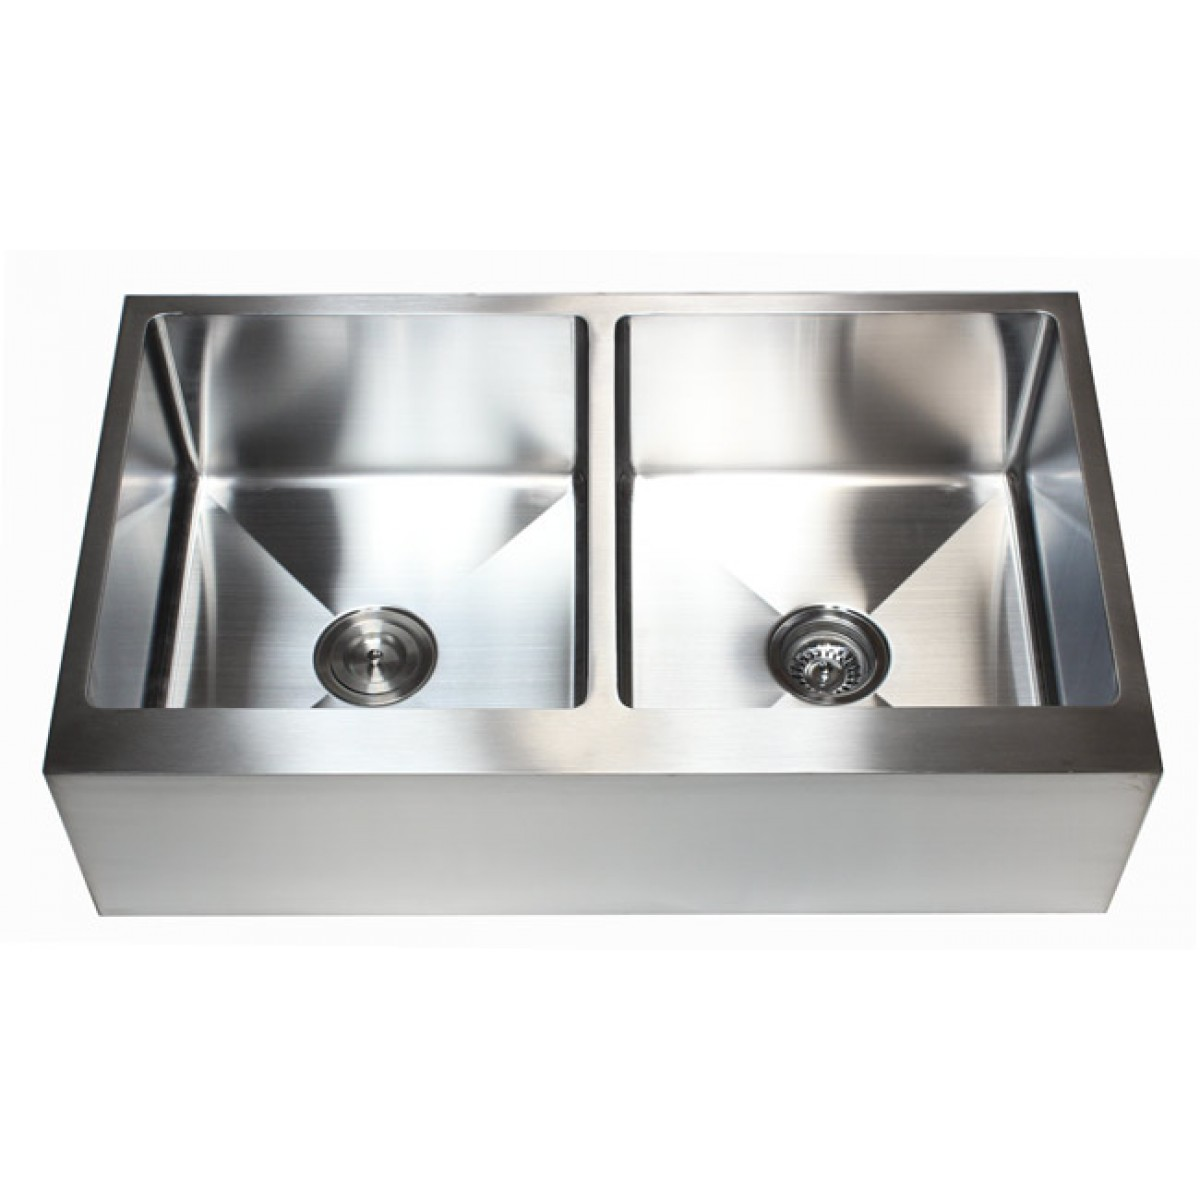 Stainless Steel Double Bowl X Kitchen Sink